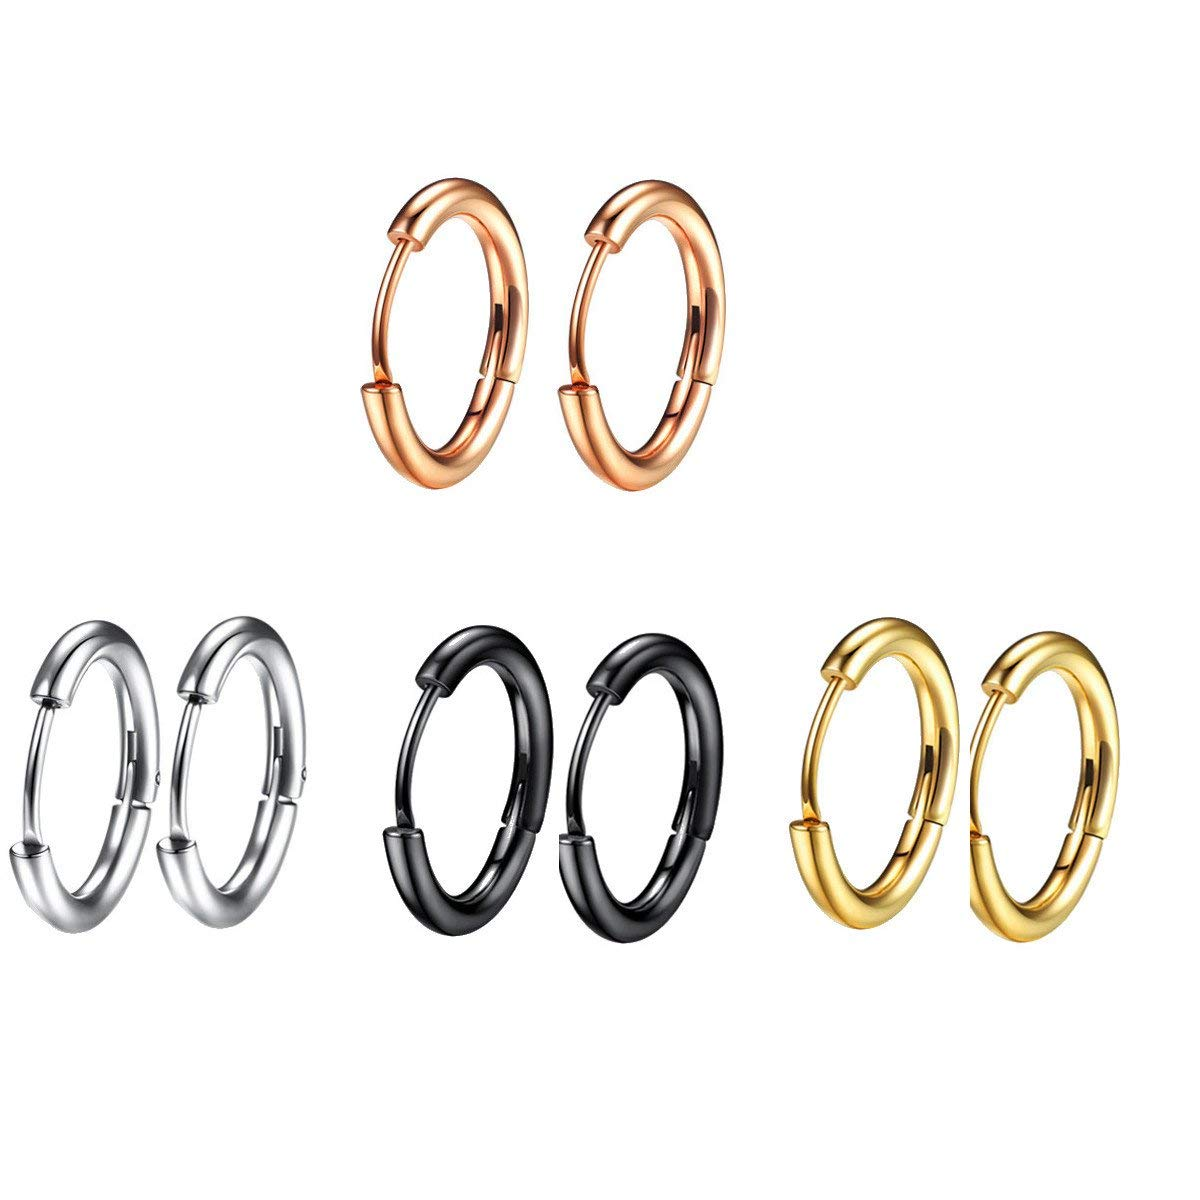 578d18e3b Get Quotations · hopewey 4 Pairs Studs Hoop Earrings, Stainless Steel Earrings  4 Different Colors for Women and